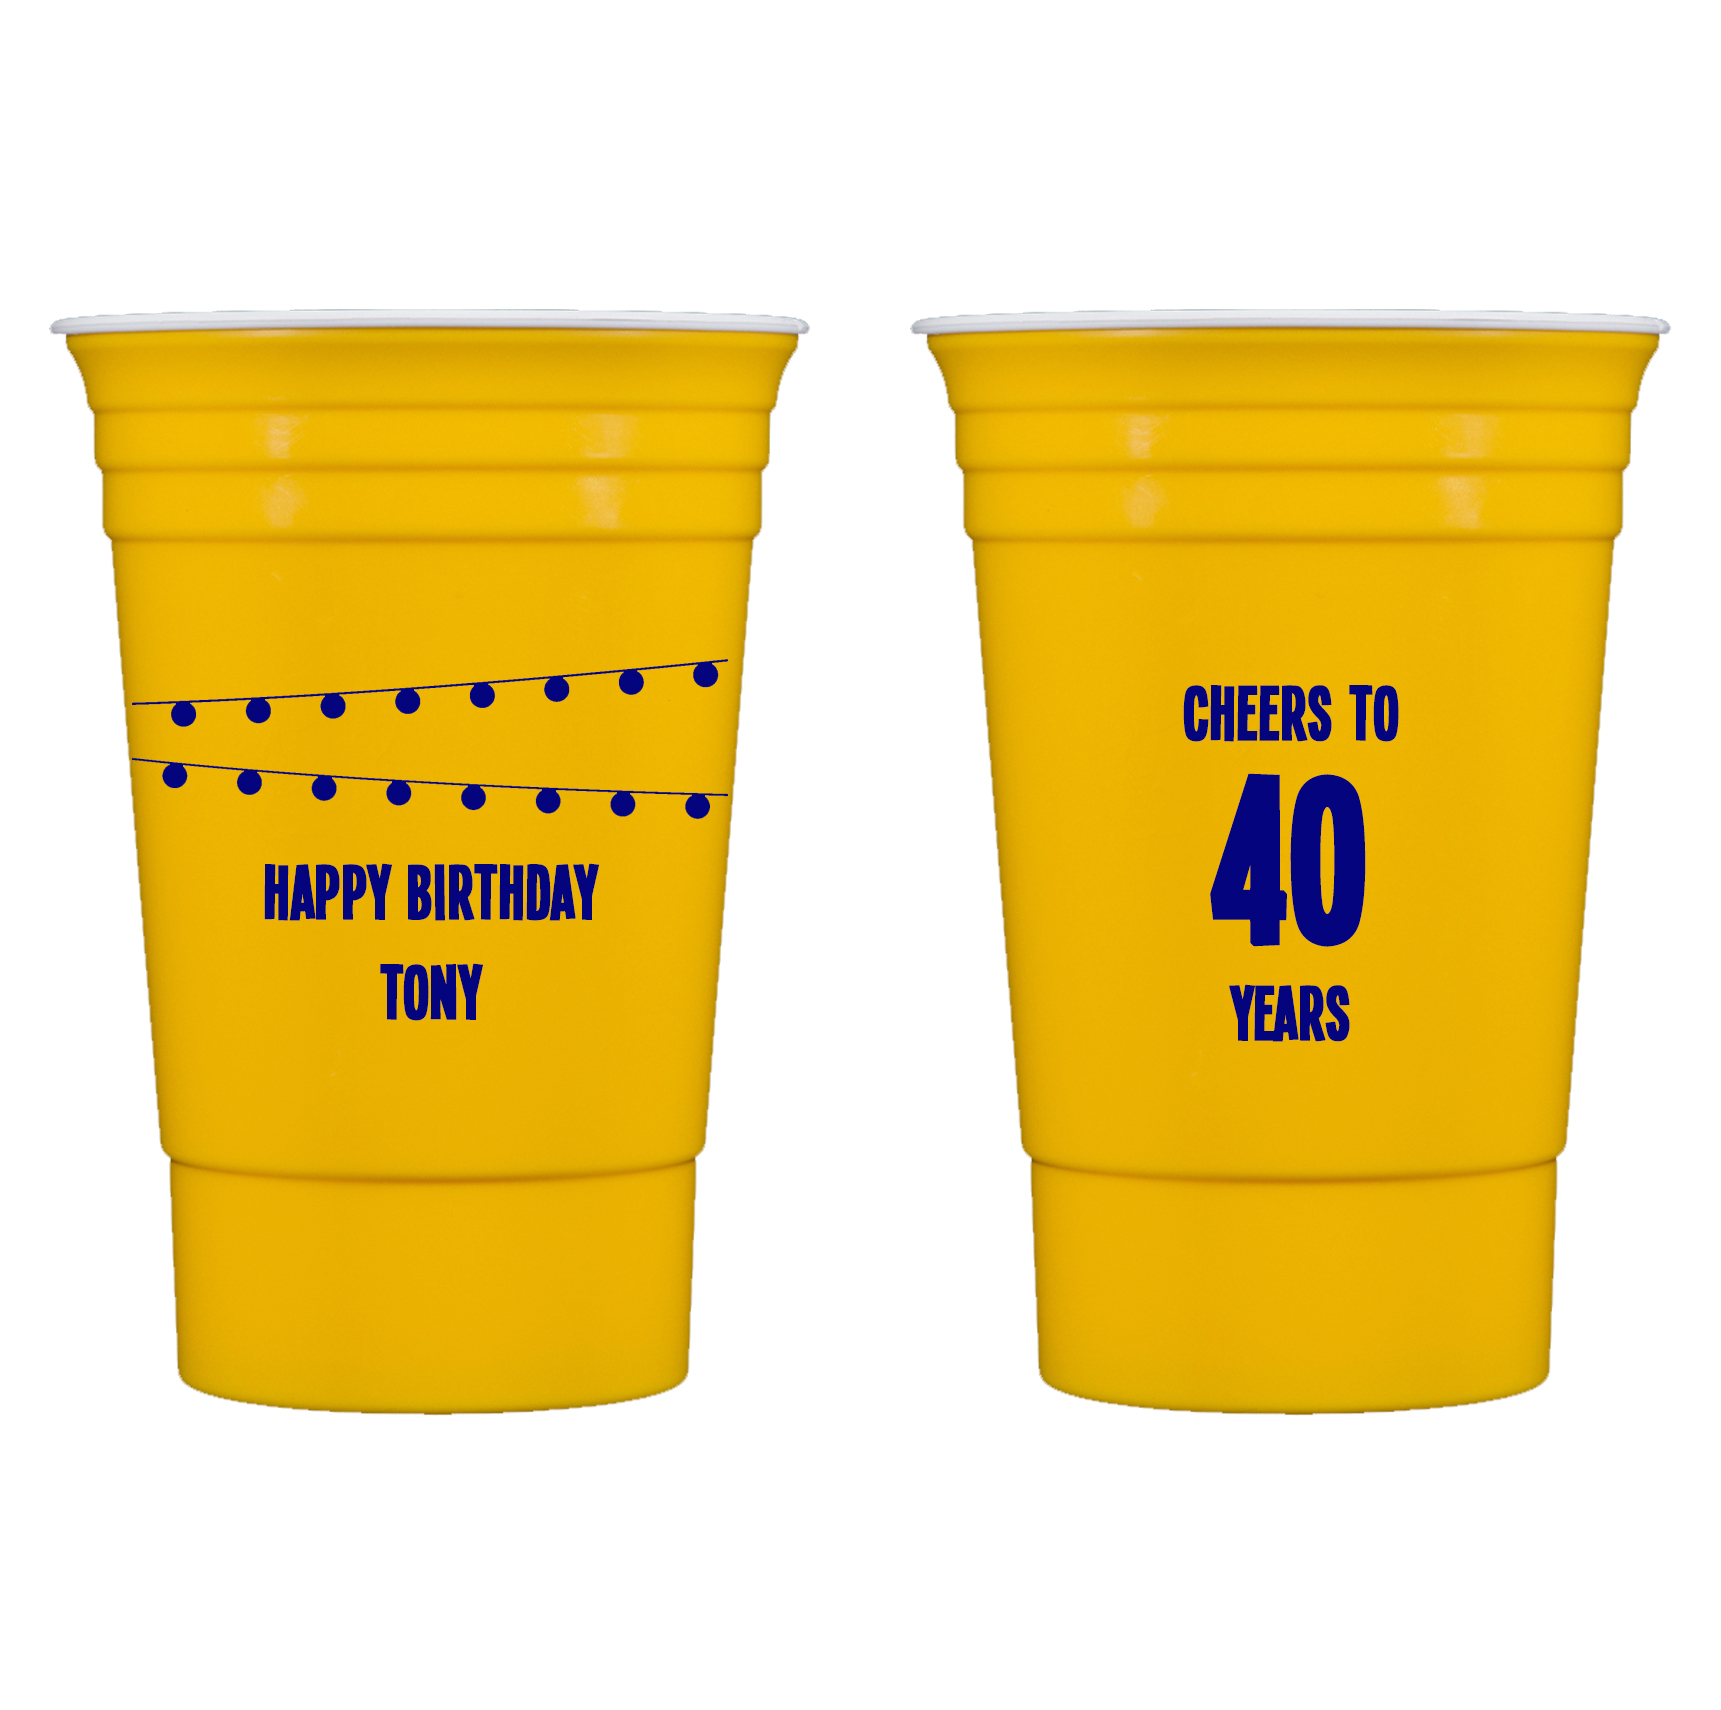 party cups outdoor entertaining pool cups personalized cups hostess gift stadium cups wedding cup favors Personalized plastic cups